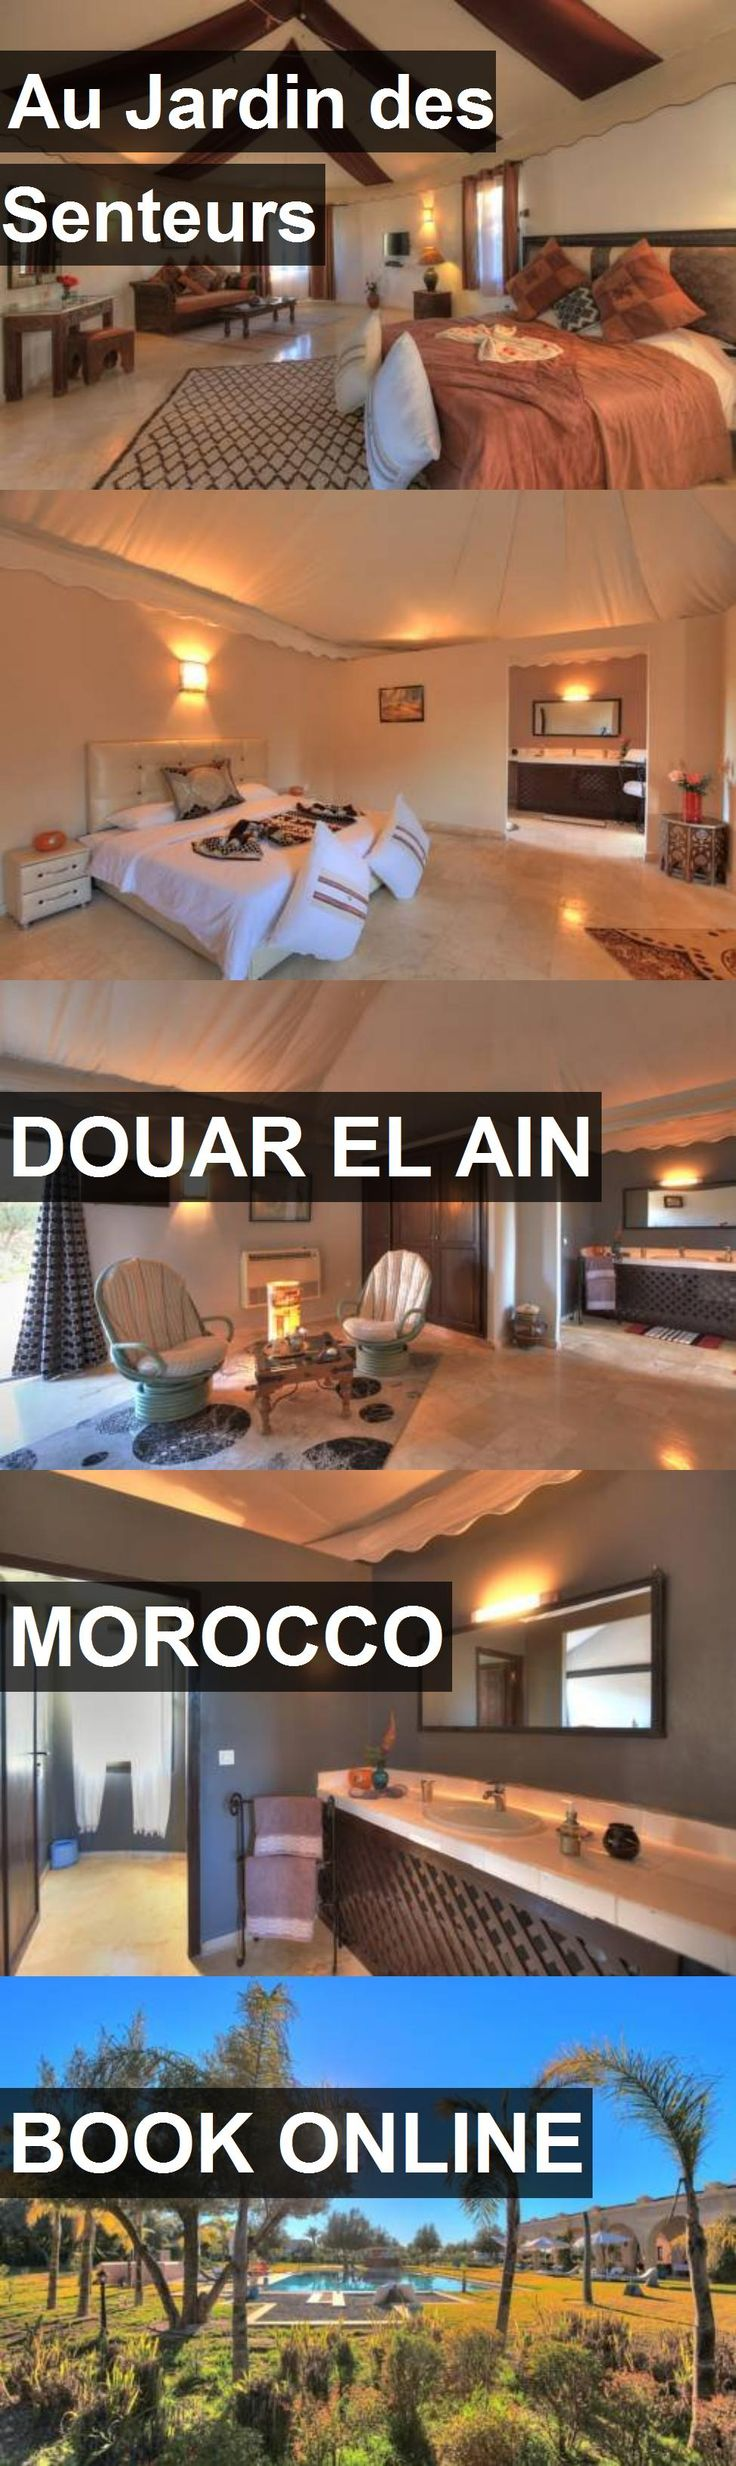 Hotel Au Jardin des Senteurs in Douar el Ain, Morocco. For more information, photos, reviews and best prices please follow the link. #Morocco #DouarelAin #AuJardindesSenteurs #hotel #travel #vacation